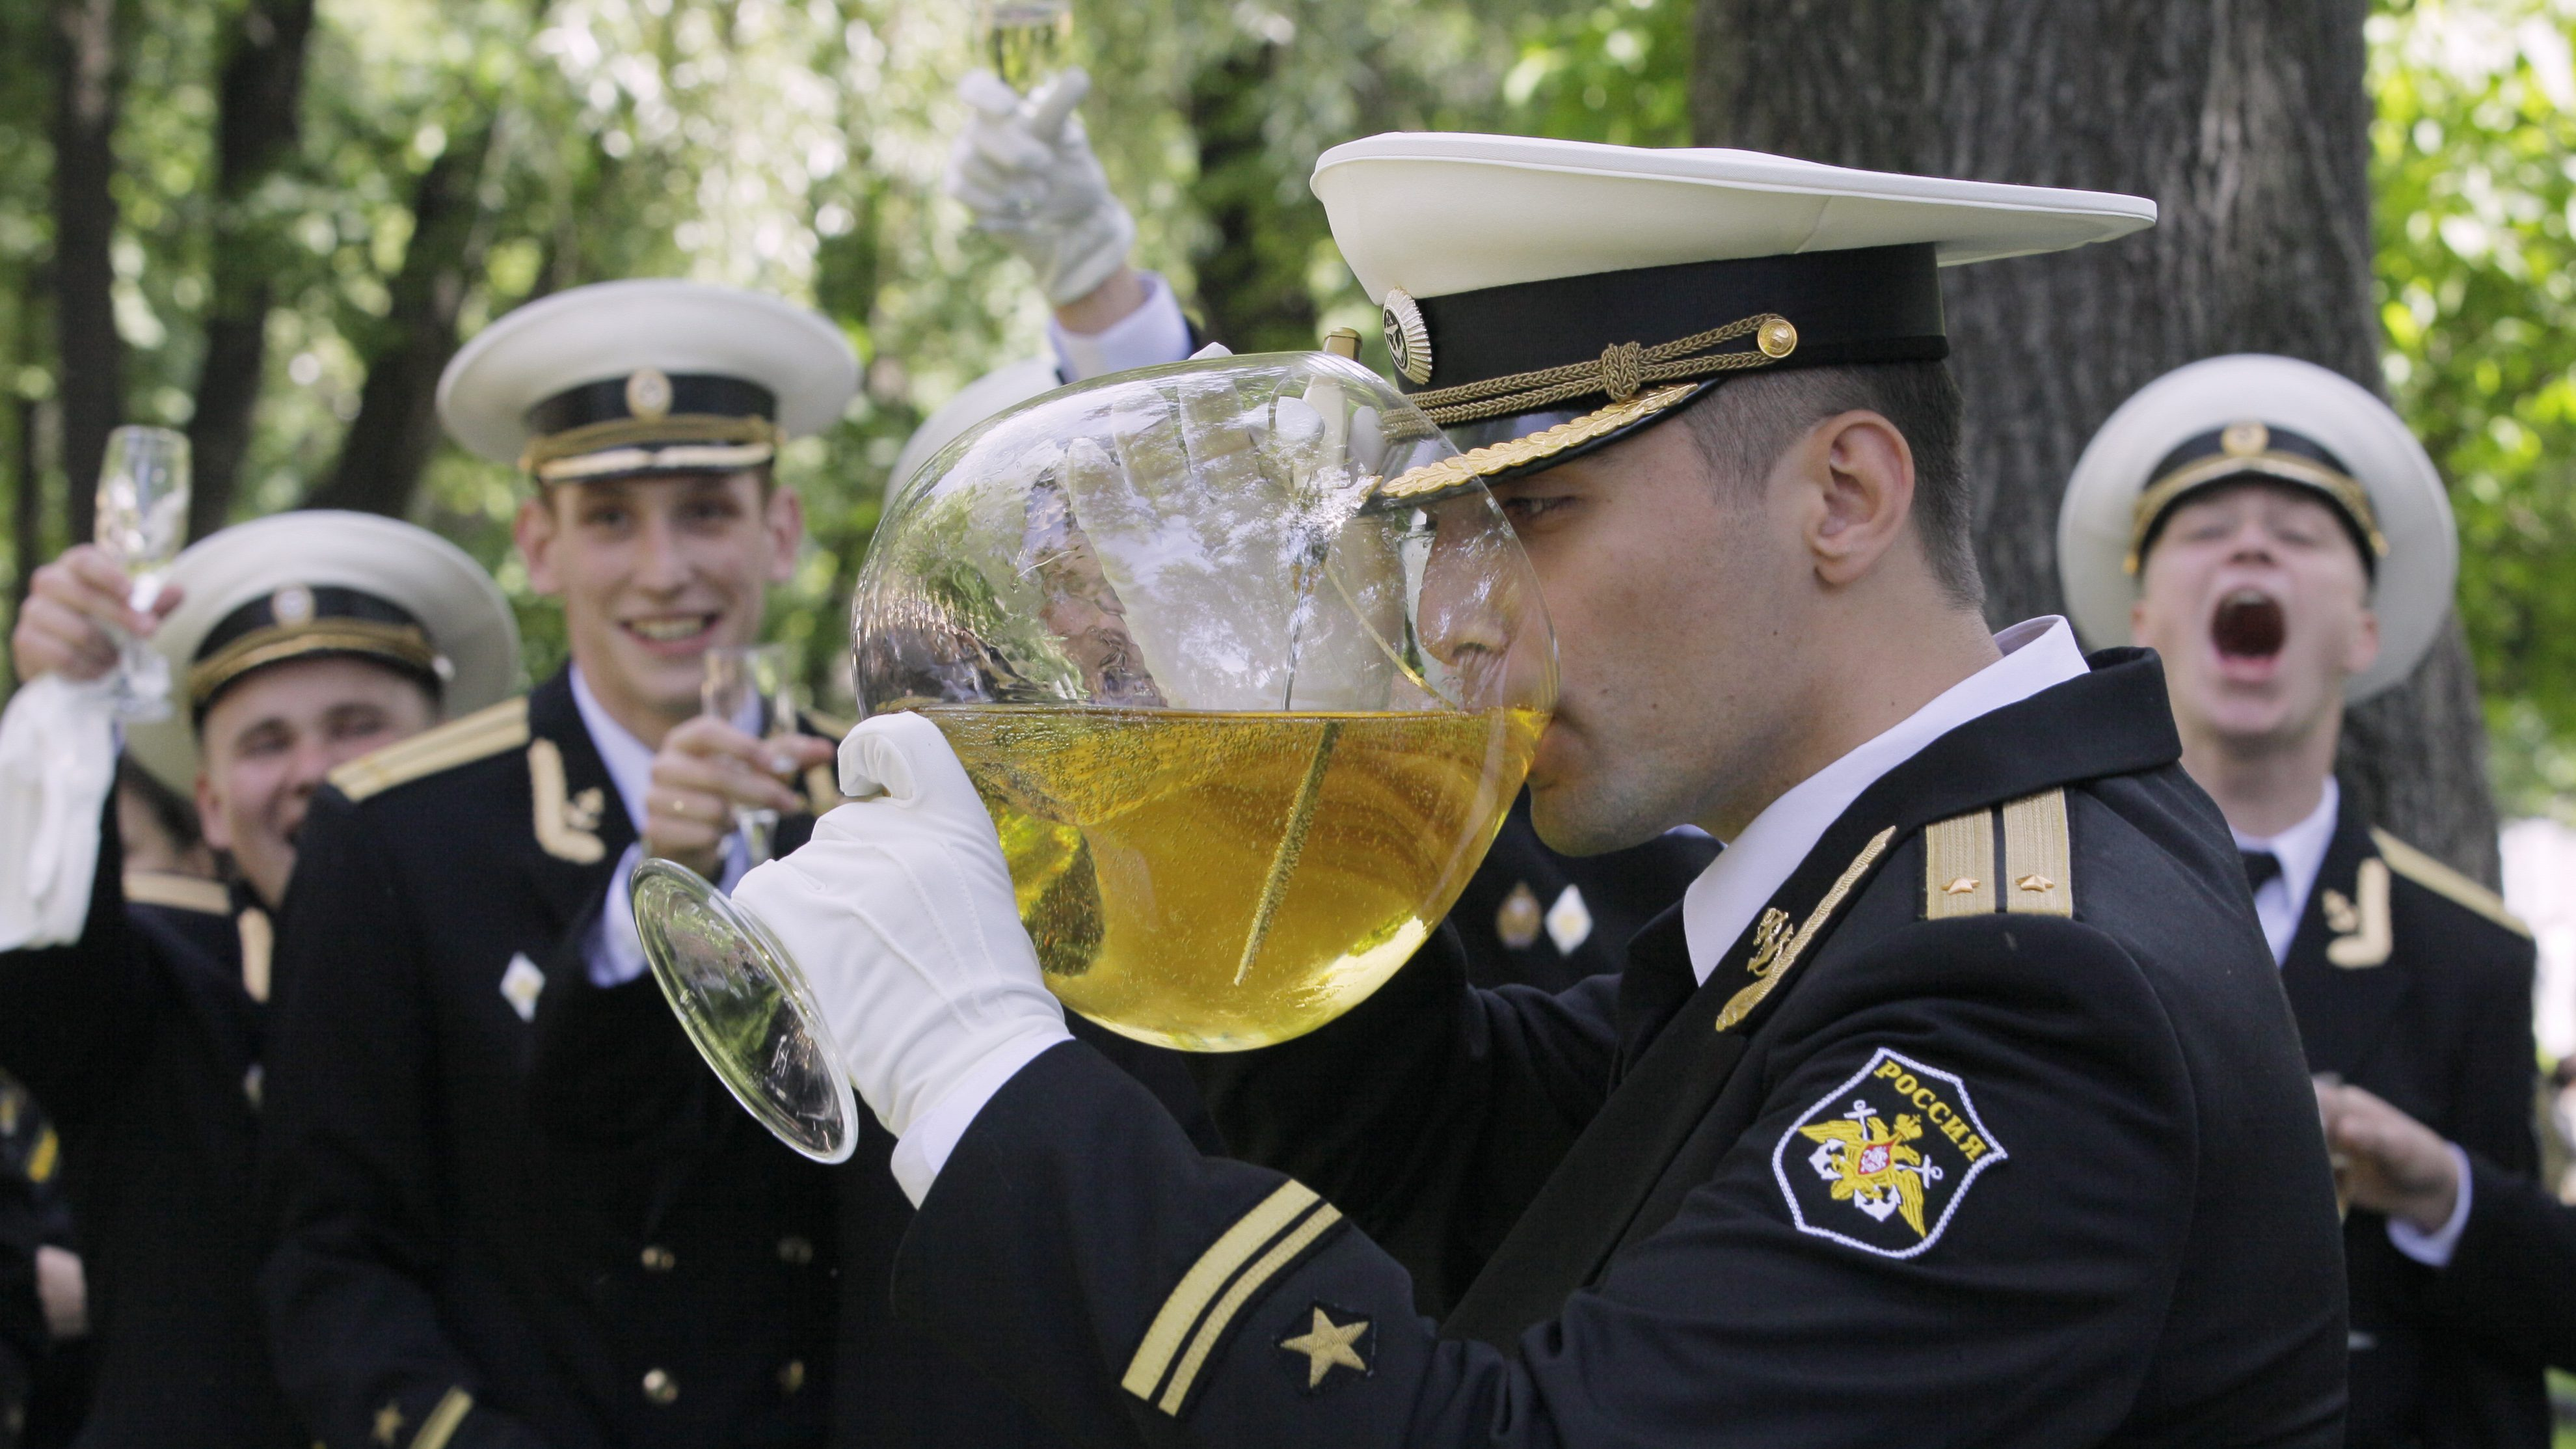 an image of a russian navy officer drinking from an enormous glass of wine